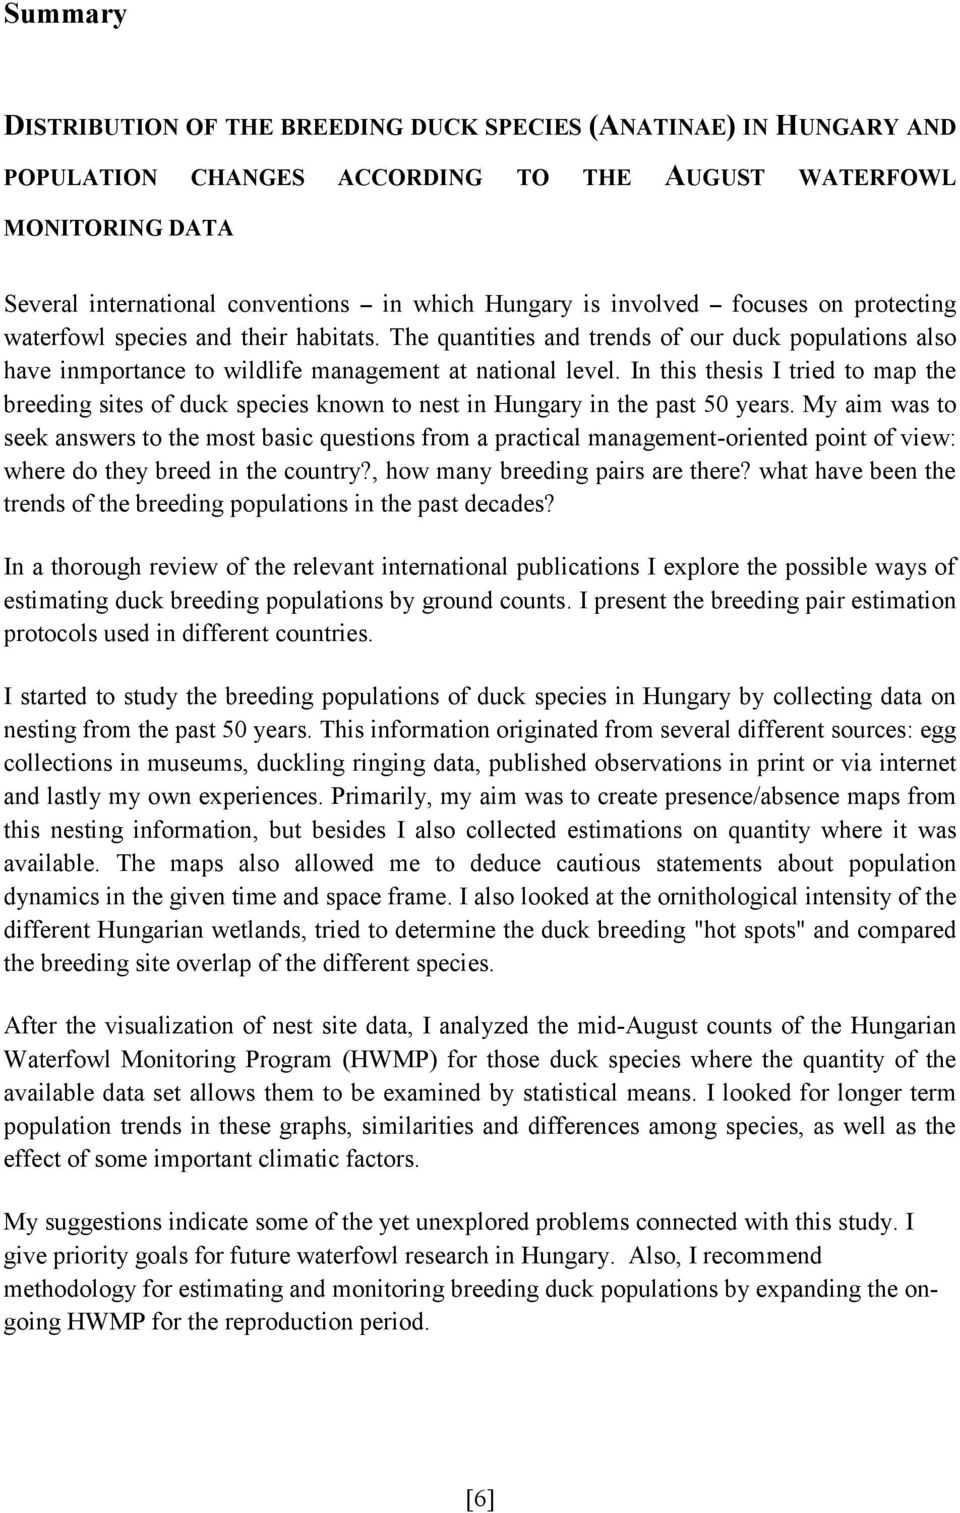 In this thesis I tried to map the breeding sites of duck species known to nest in Hungary in the past 50 years.